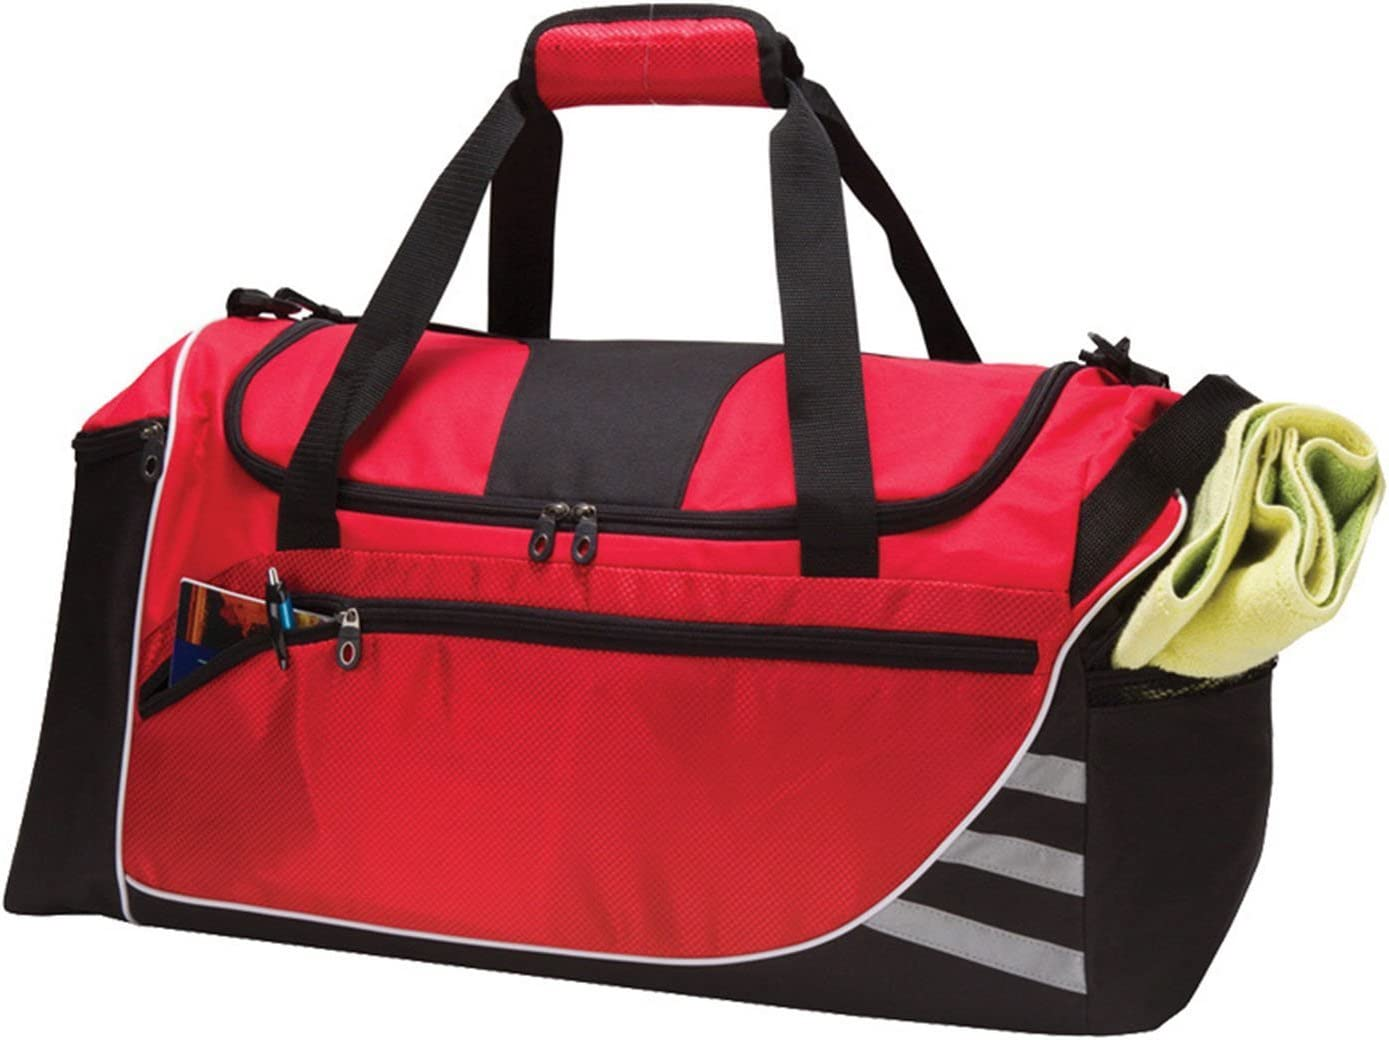 Signature Pattern Red Lightweight Crossfit Gym Bag 24-inch Nylon Polyester